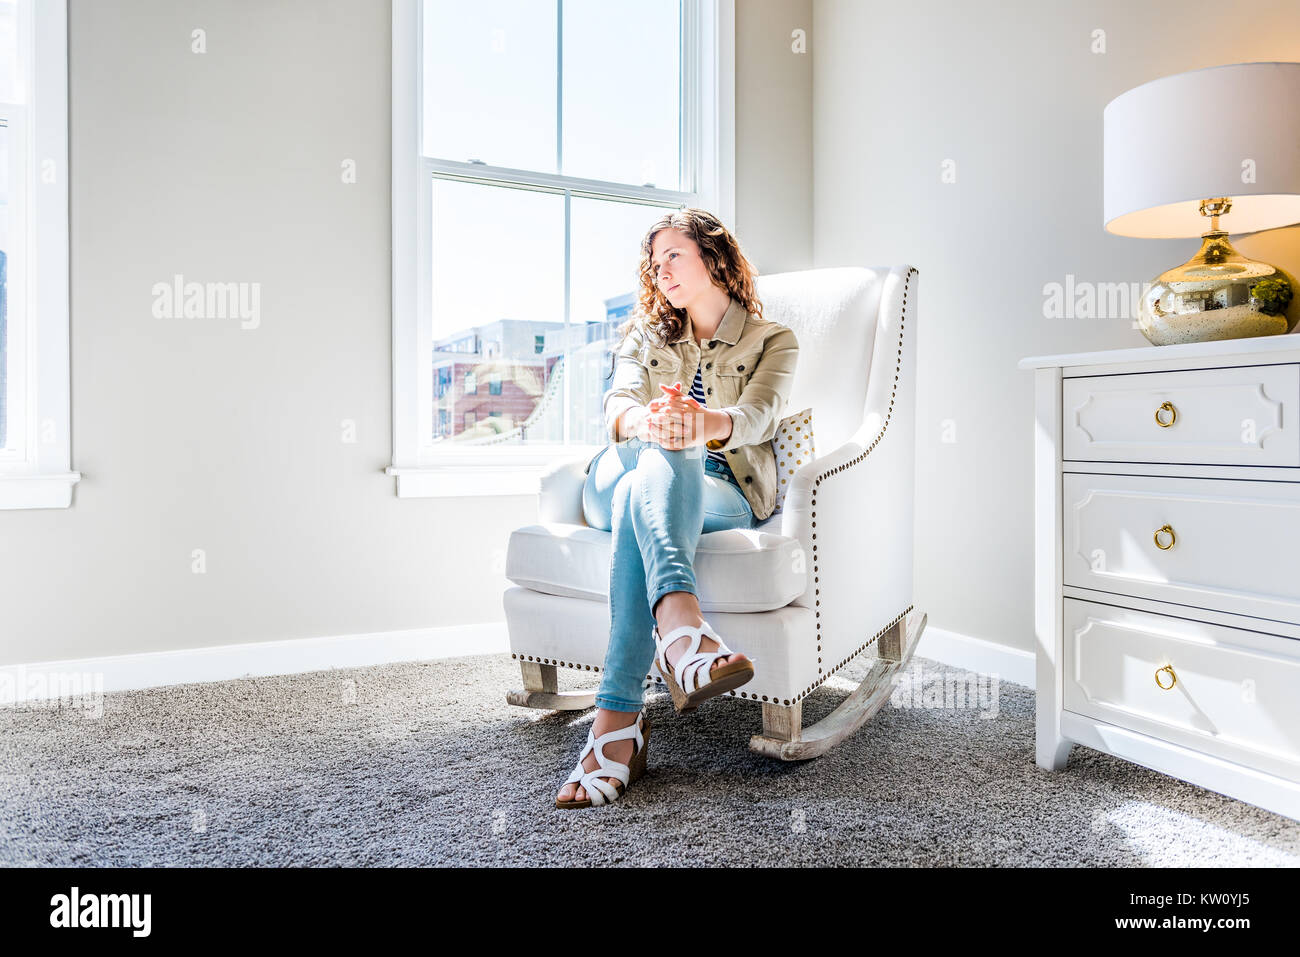 Bright white modern rocking chair in nursery room with chest of drawers, decorations in model staging home, apartment - Stock Image